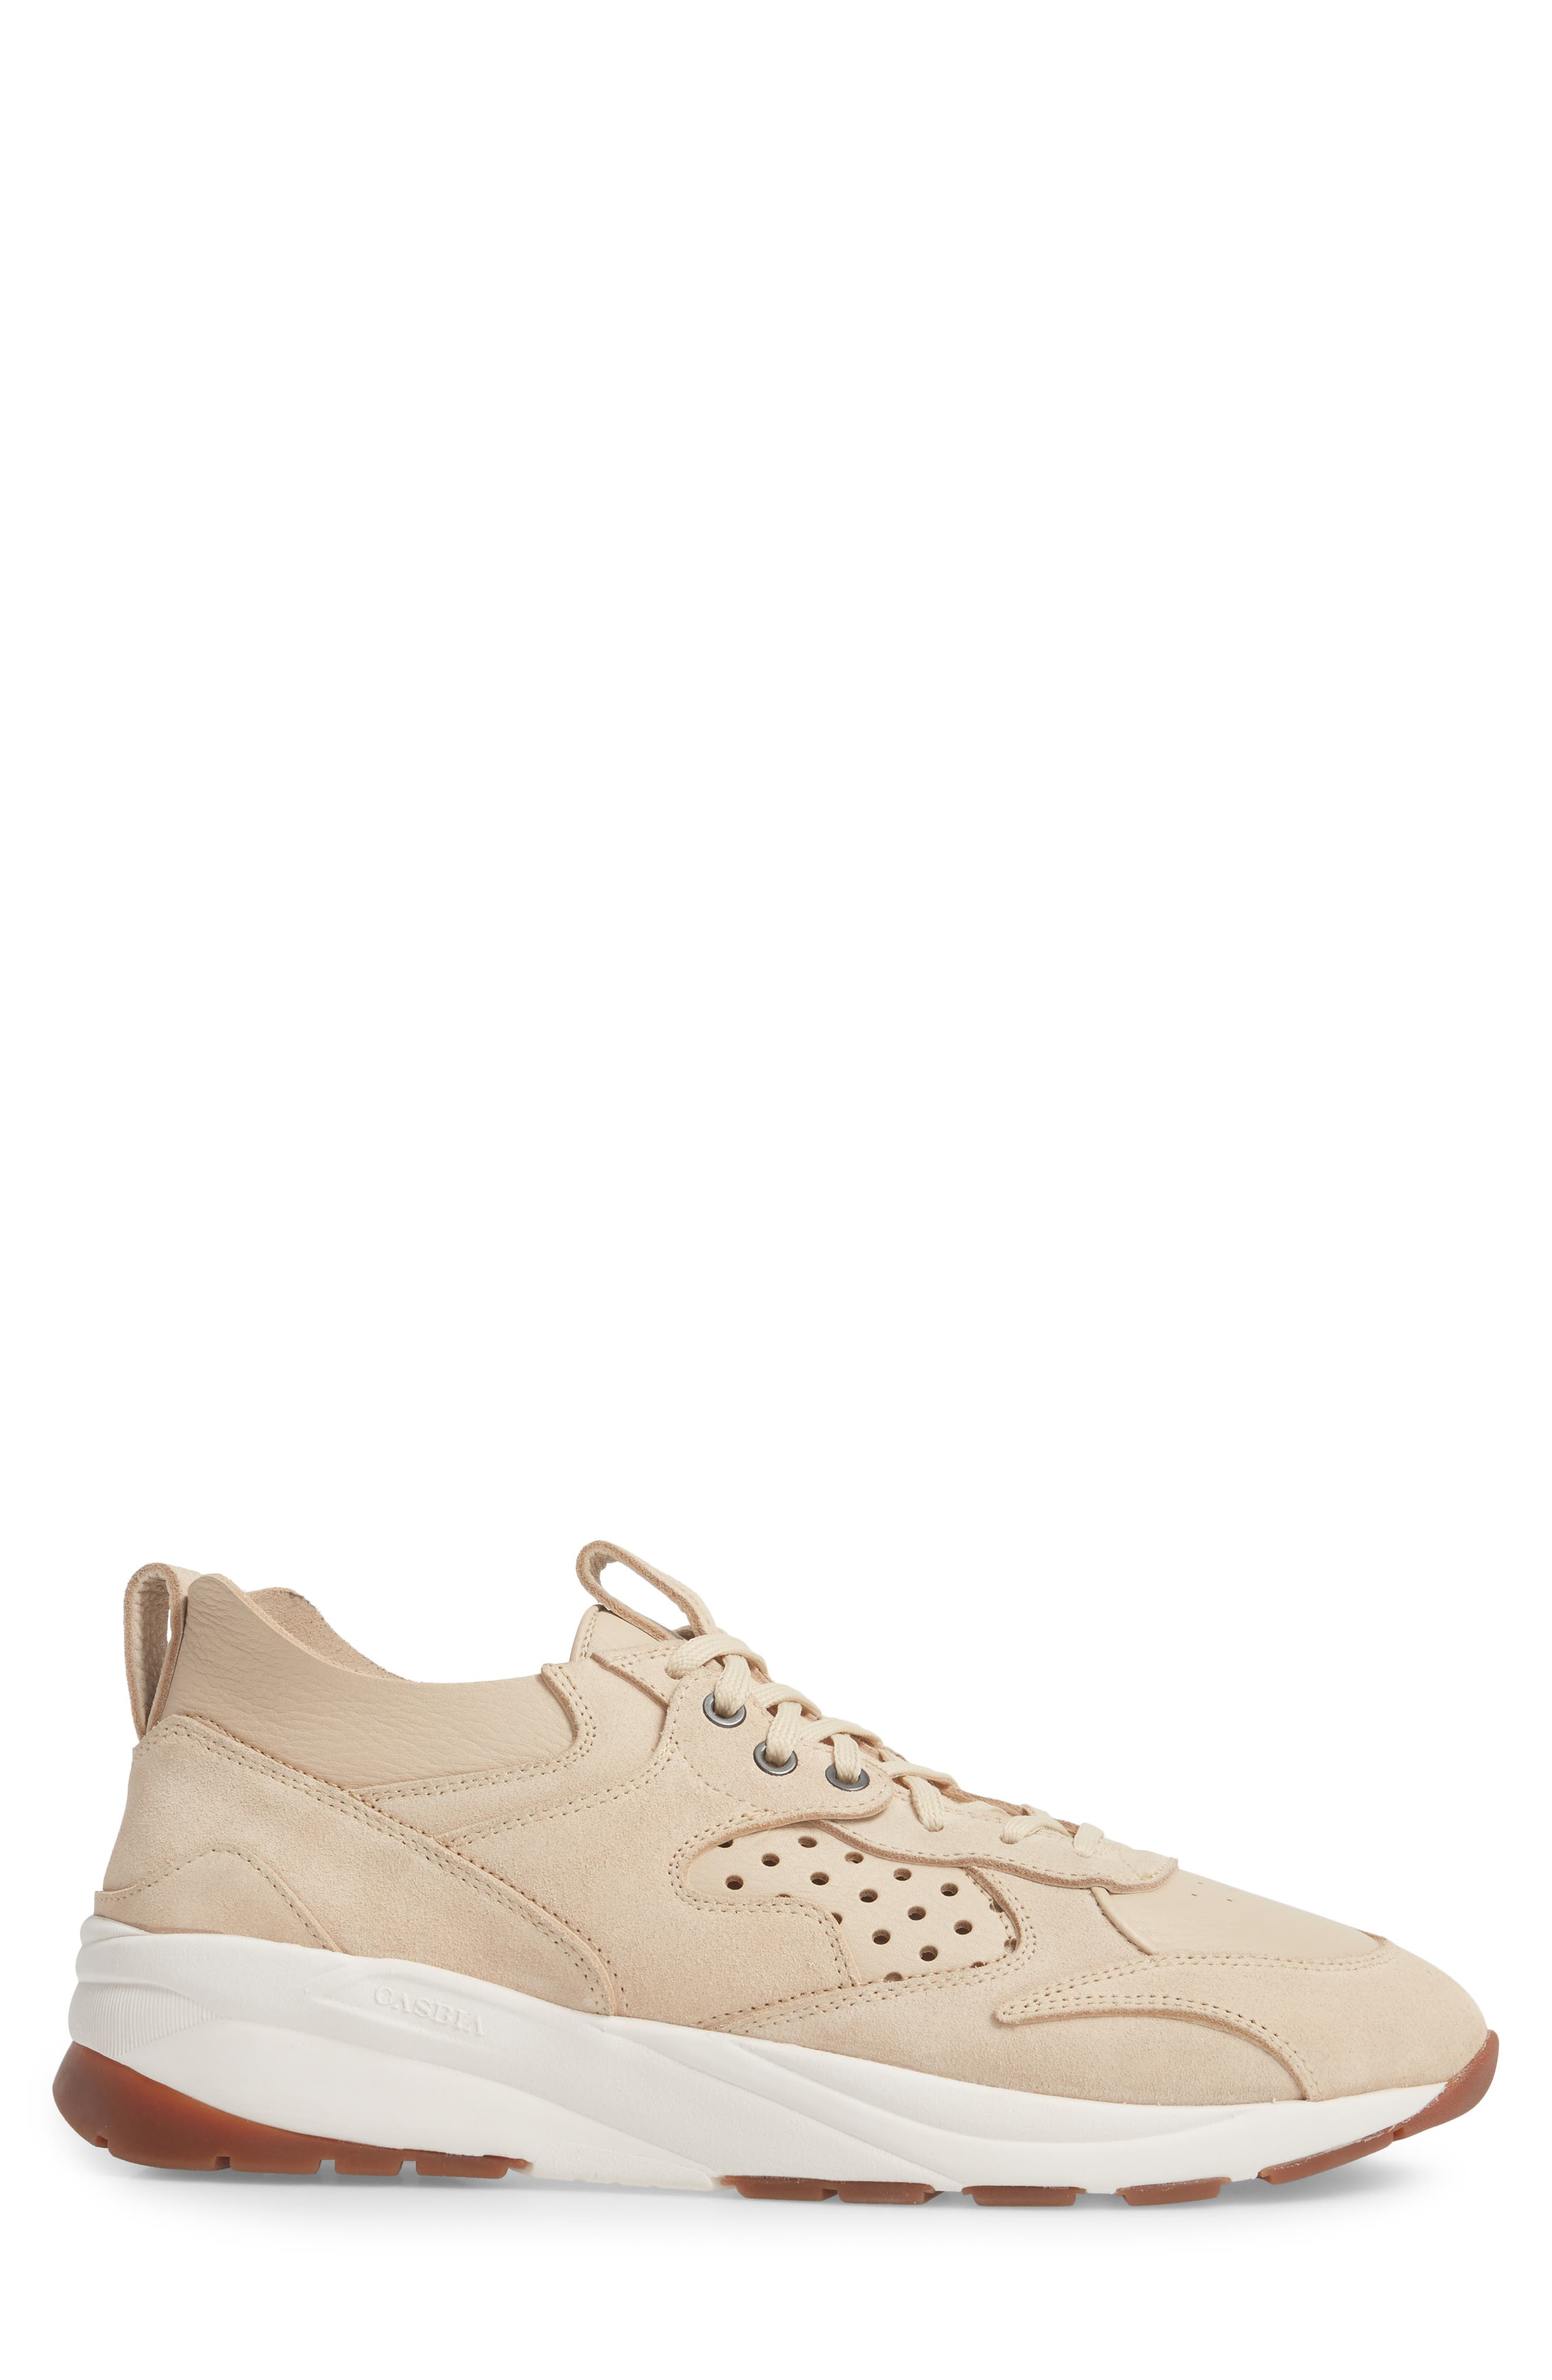 Champion Veloce Sneaker,                             Alternate thumbnail 3, color,                             Beige Suede